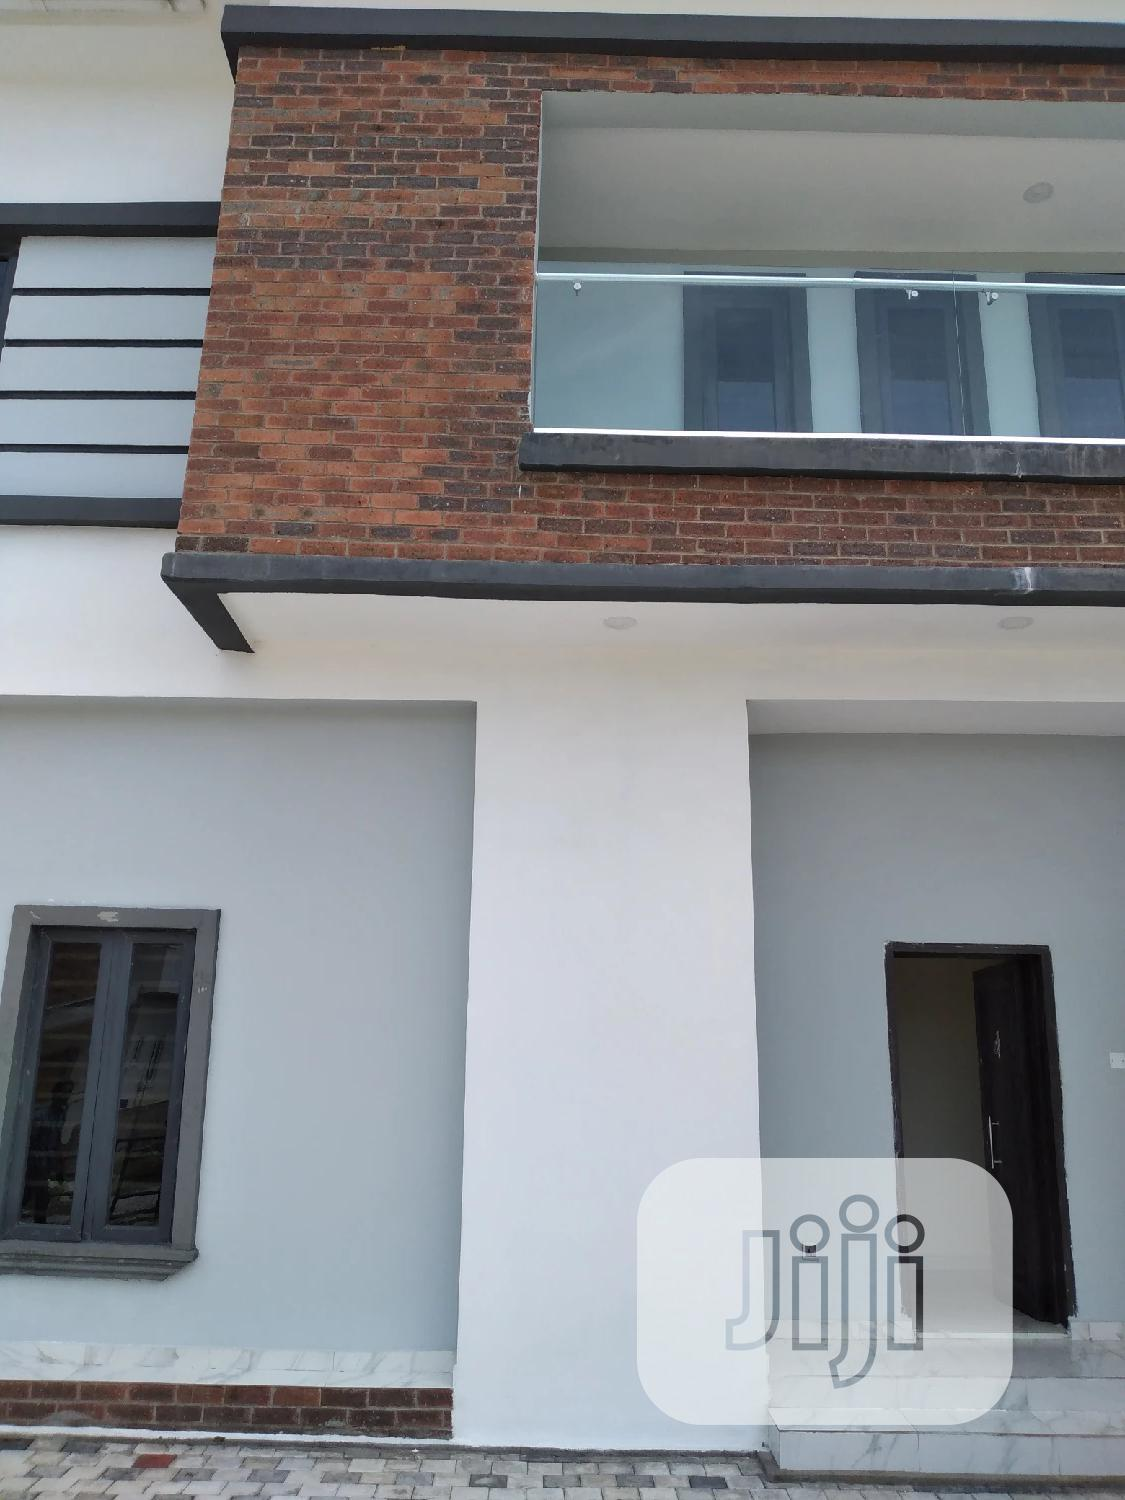 5 Bedrooms Duplex   Houses & Apartments For Sale for sale in Lekki, Lagos State, Nigeria